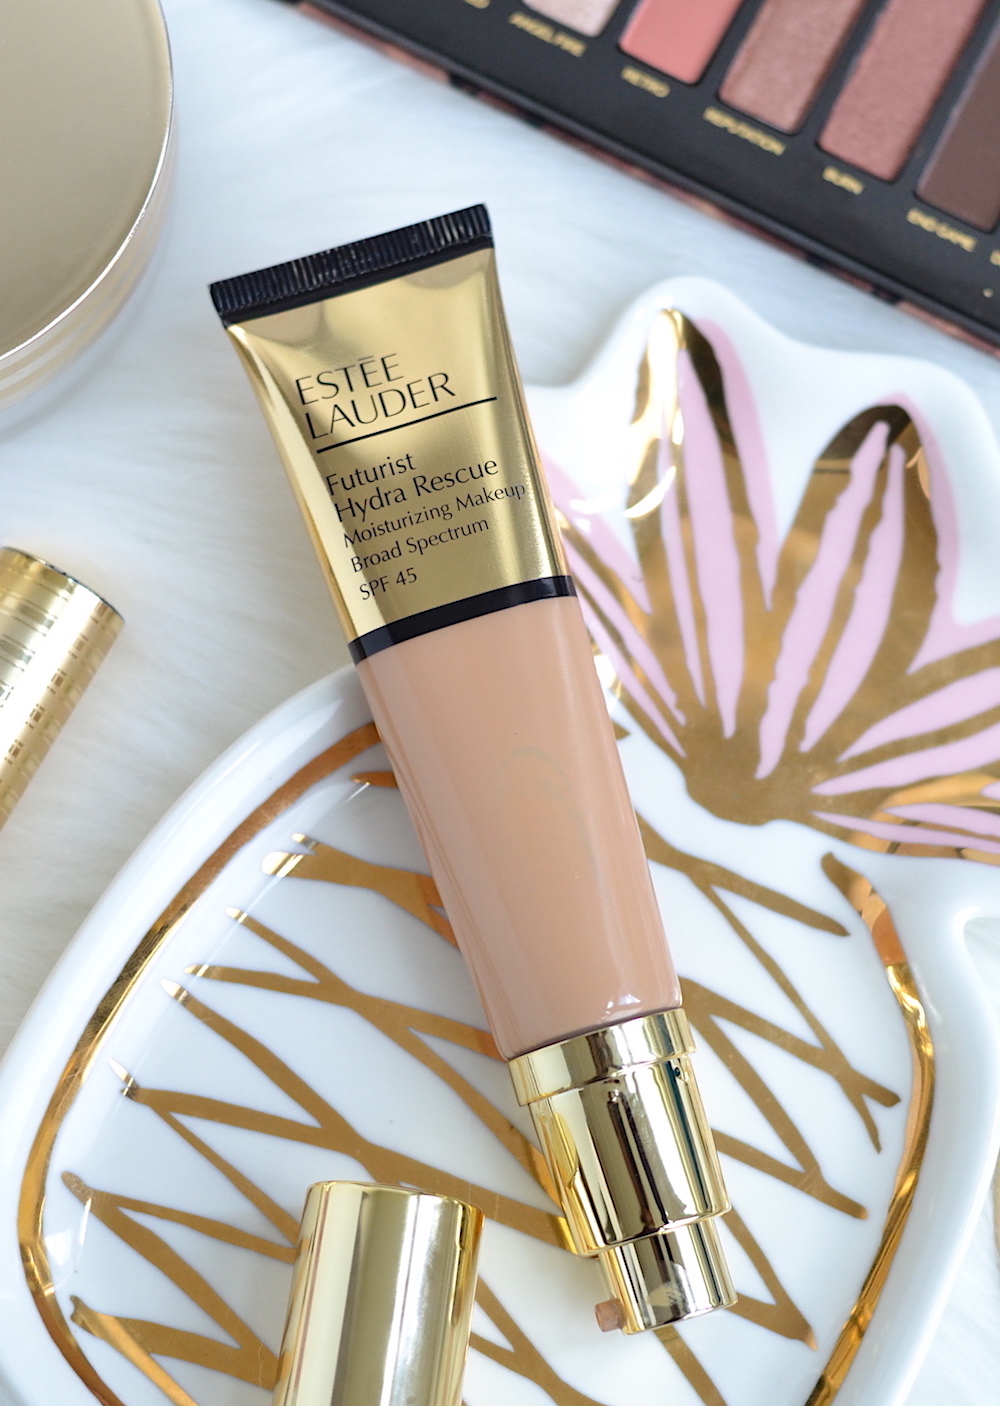 Estee Lauder Hydra Rescue Foundation